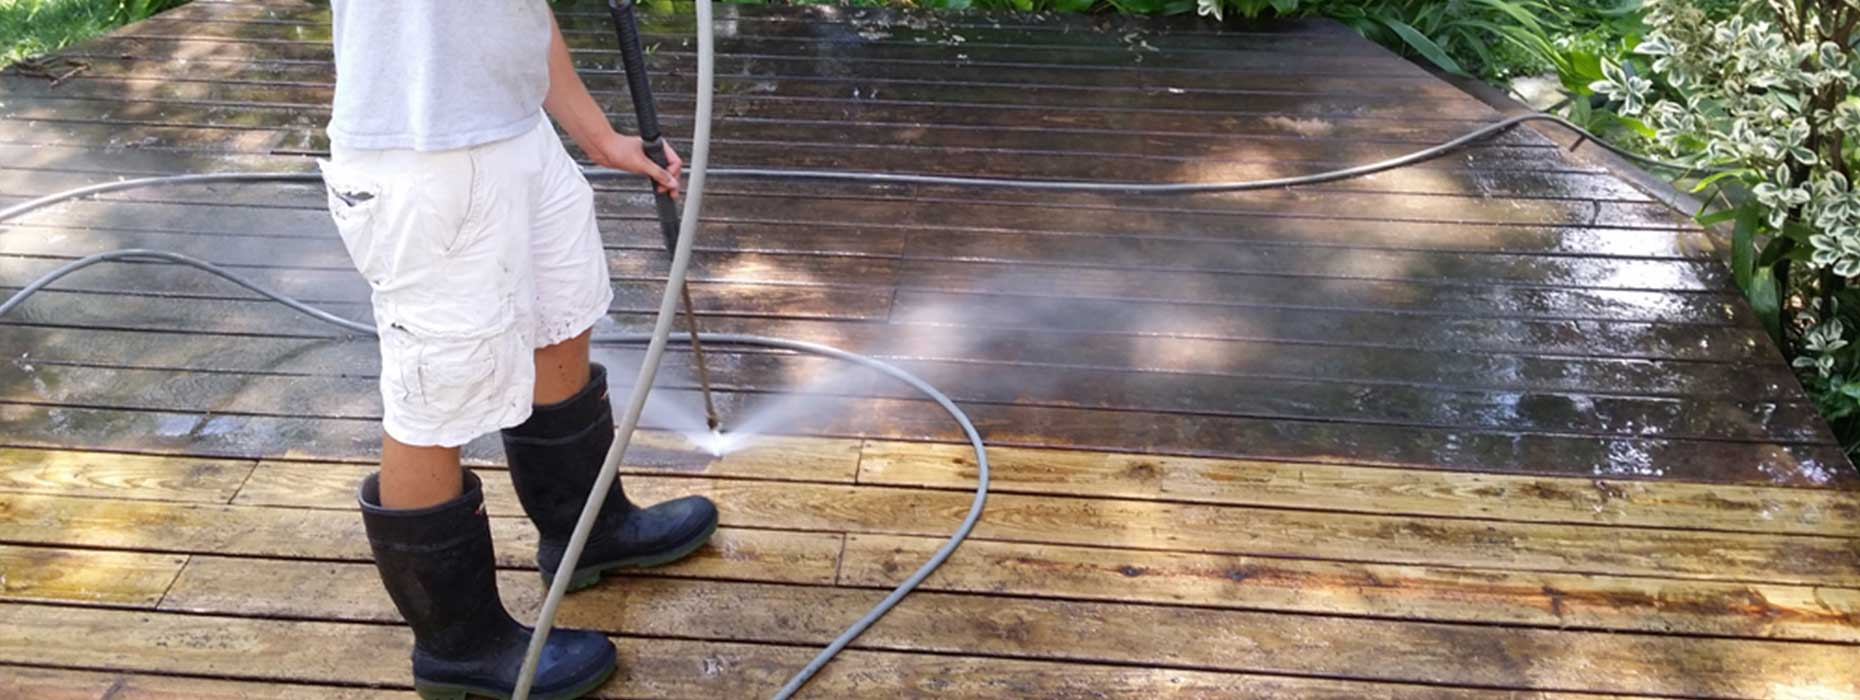 power washing meaning